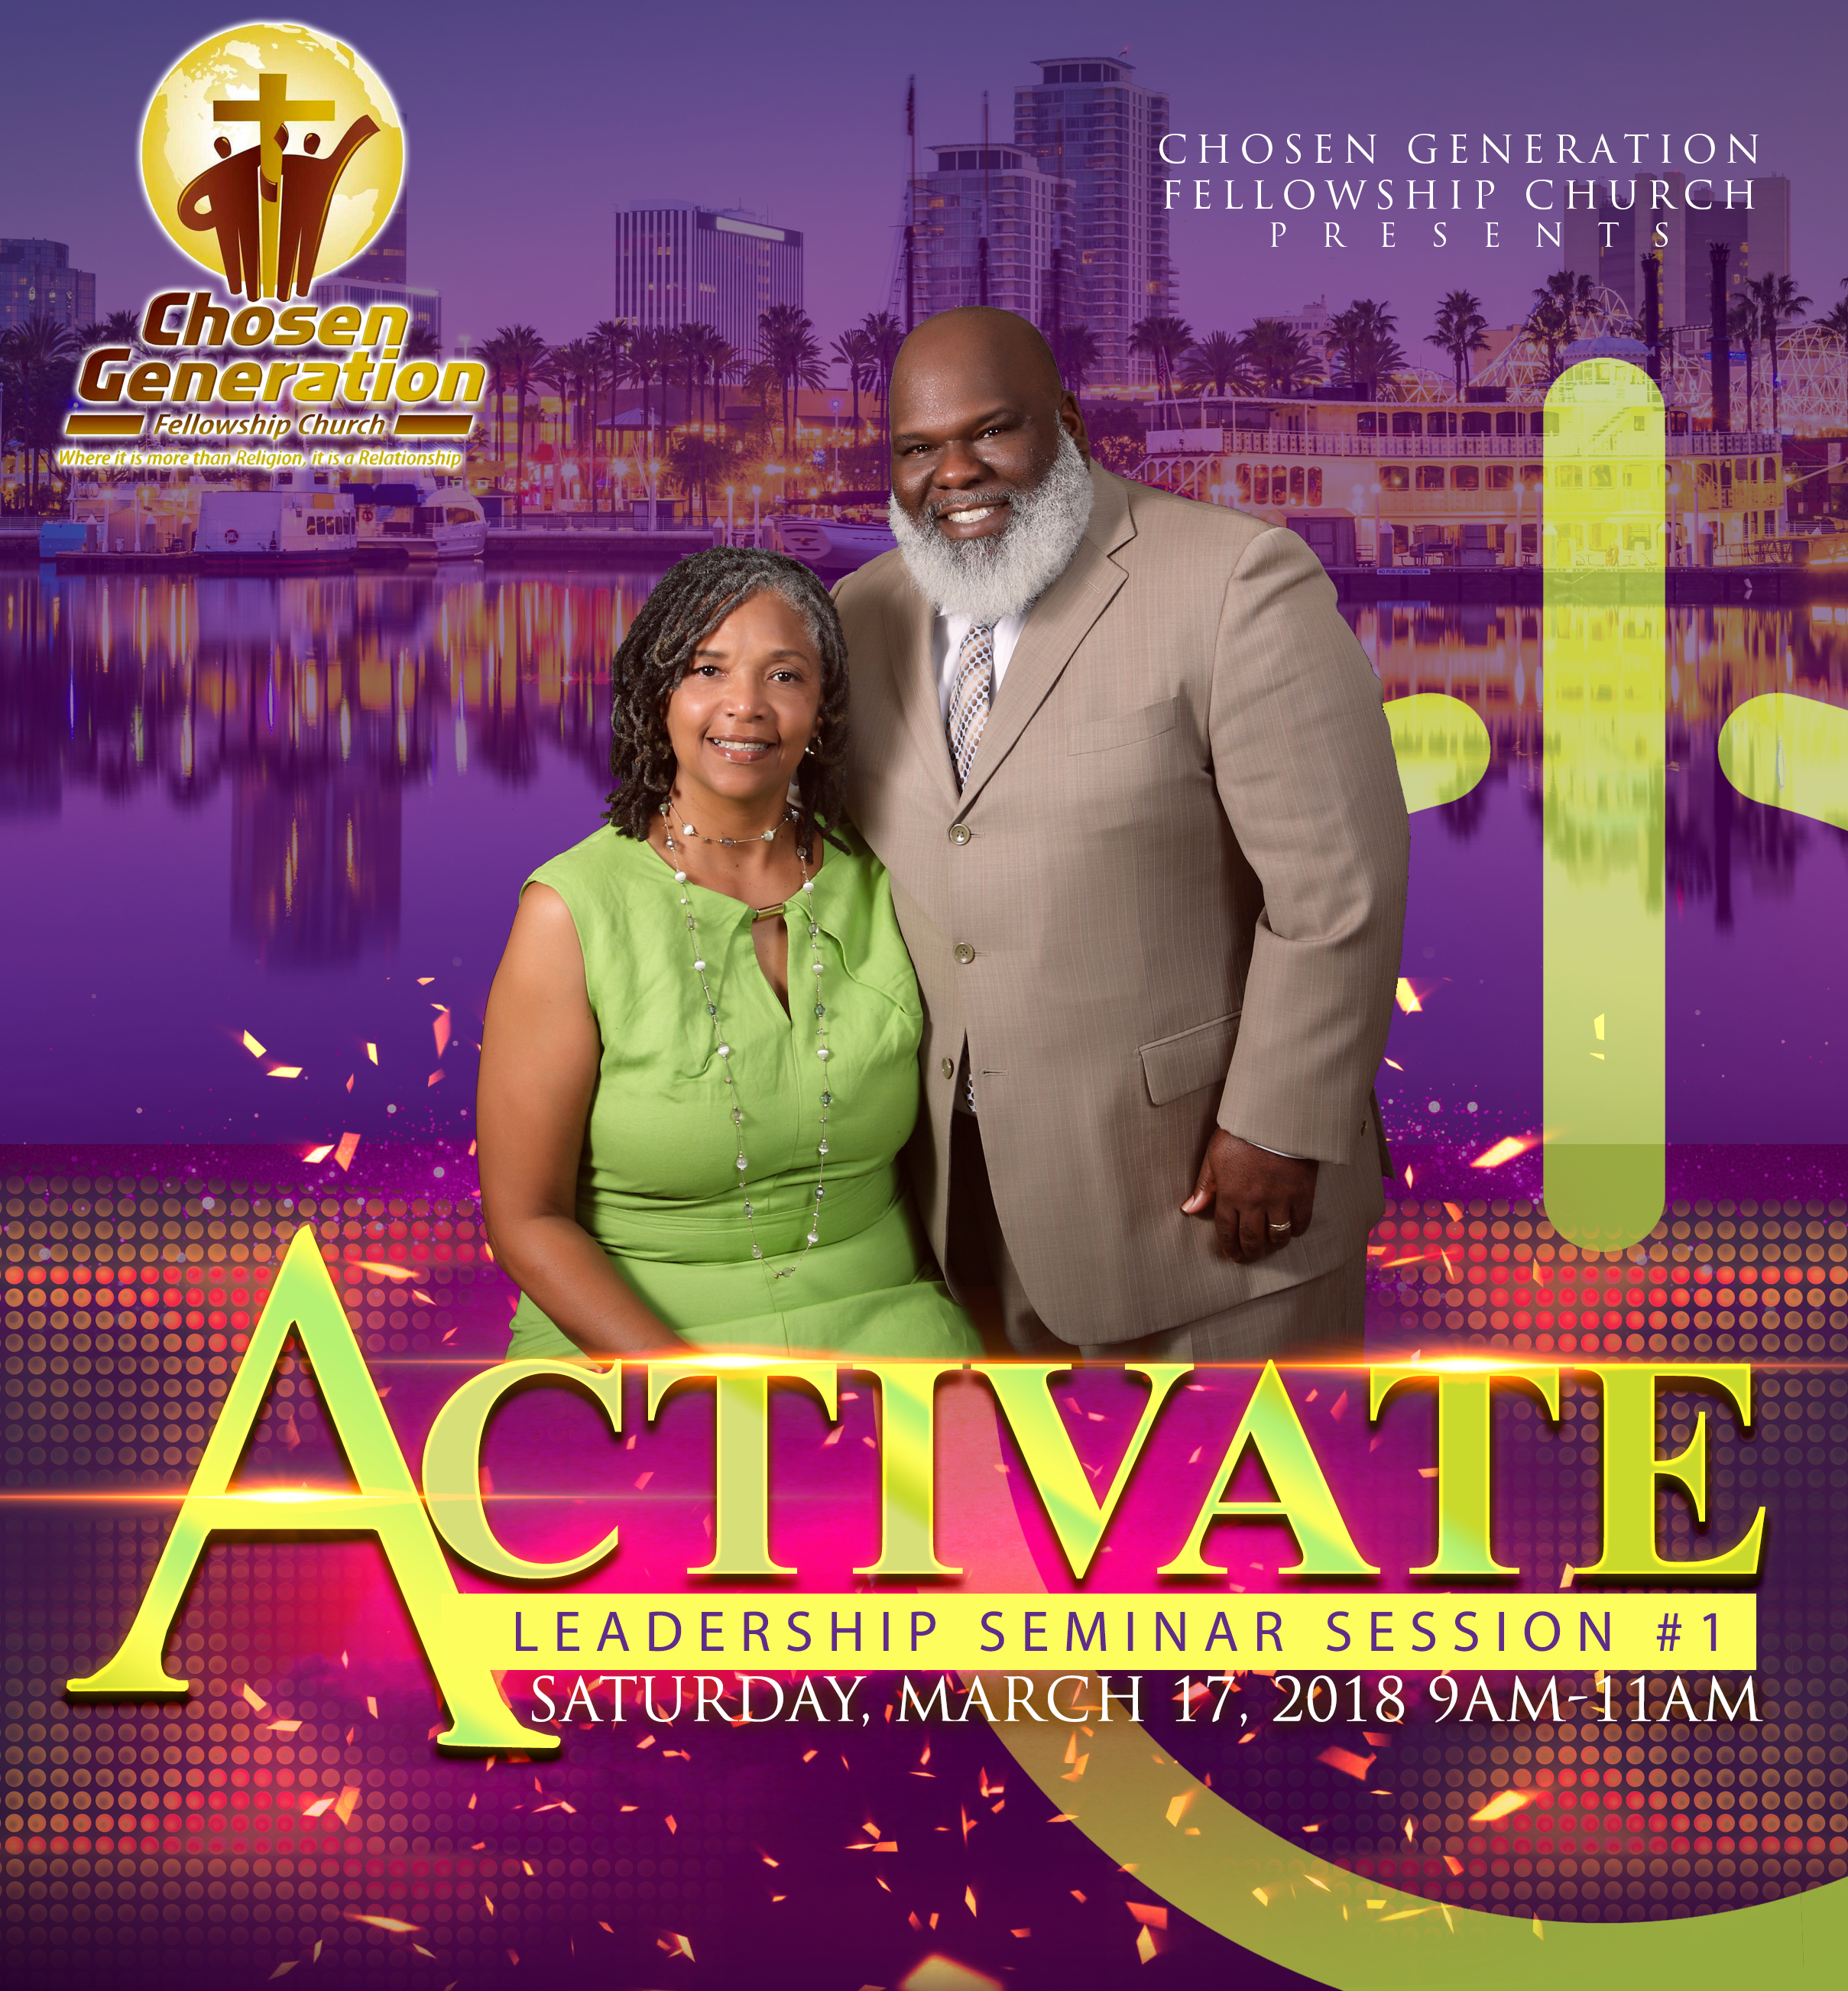 ACTIVATE Leadership Seminar